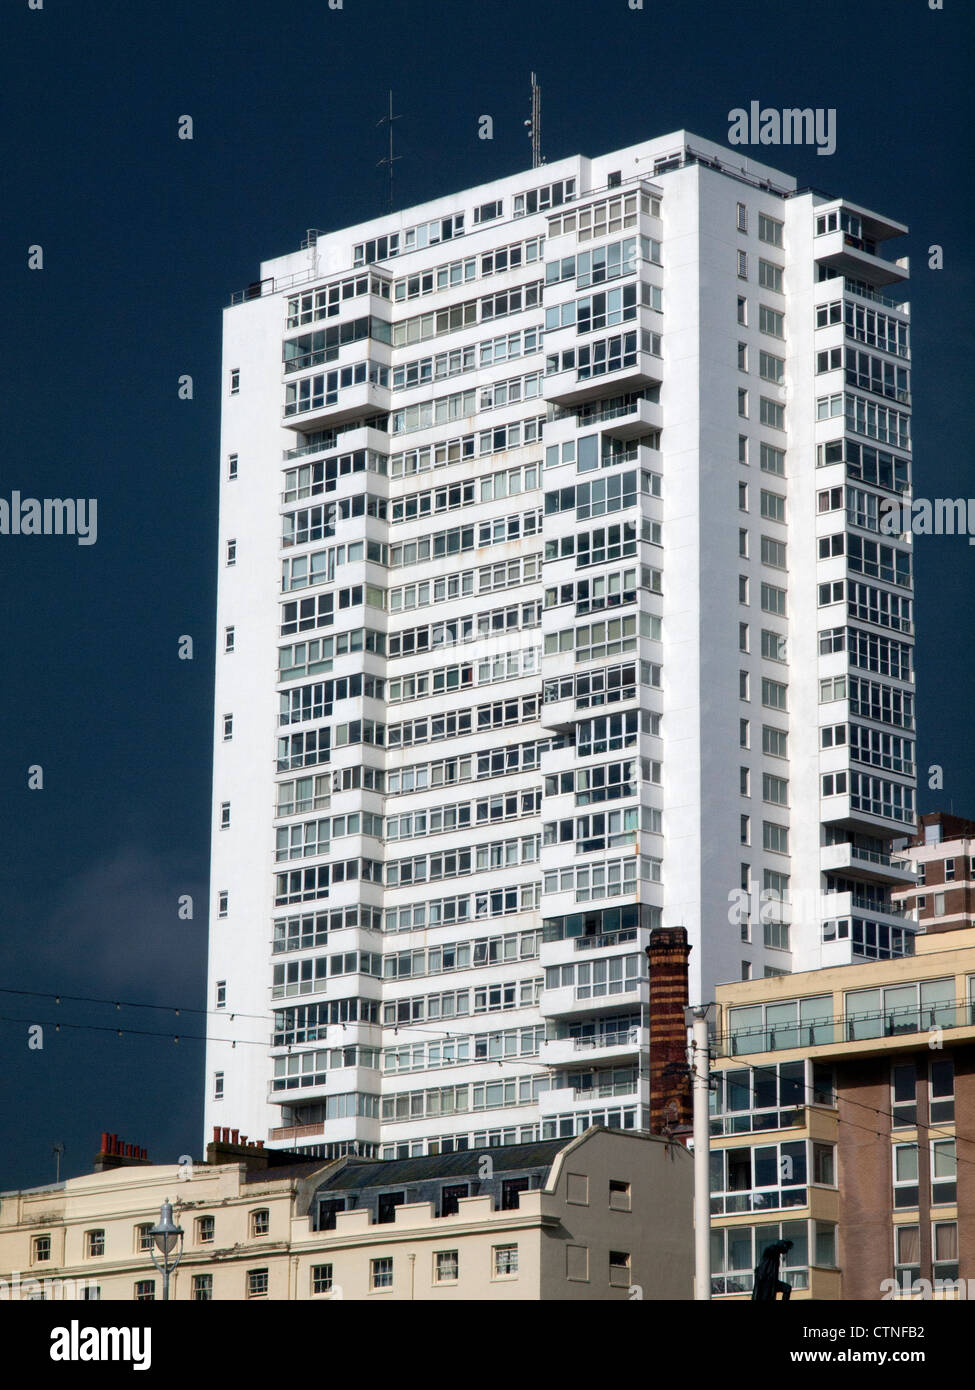 Sussex Heights,a residential tower block in Brighton,England. - Stock Image